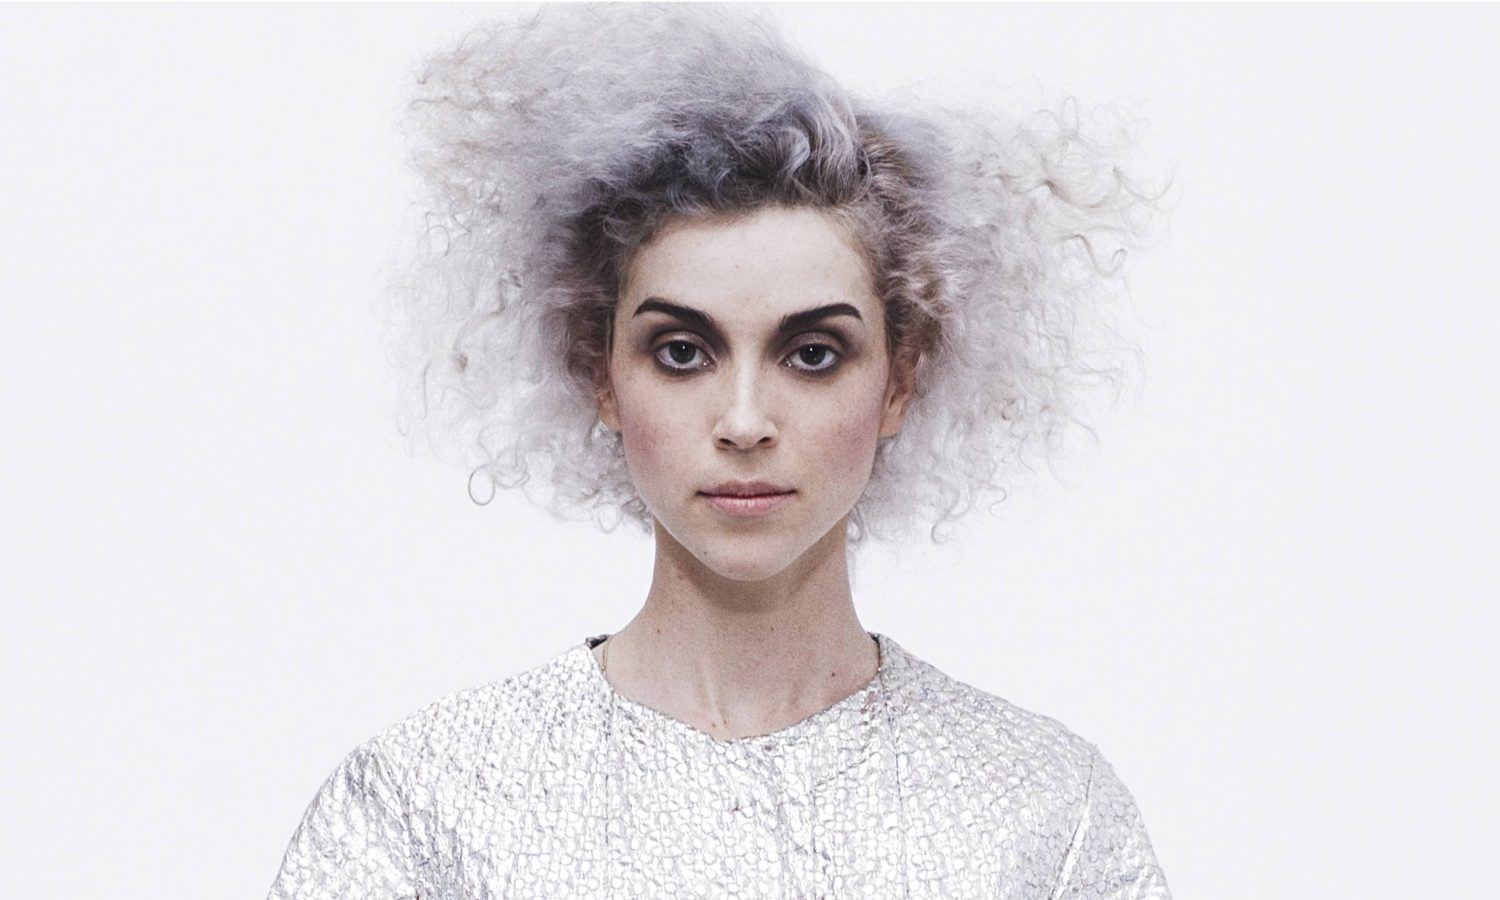 St. Vincent Covers The Rolling Stones For Erotic Thriller Soundtrack